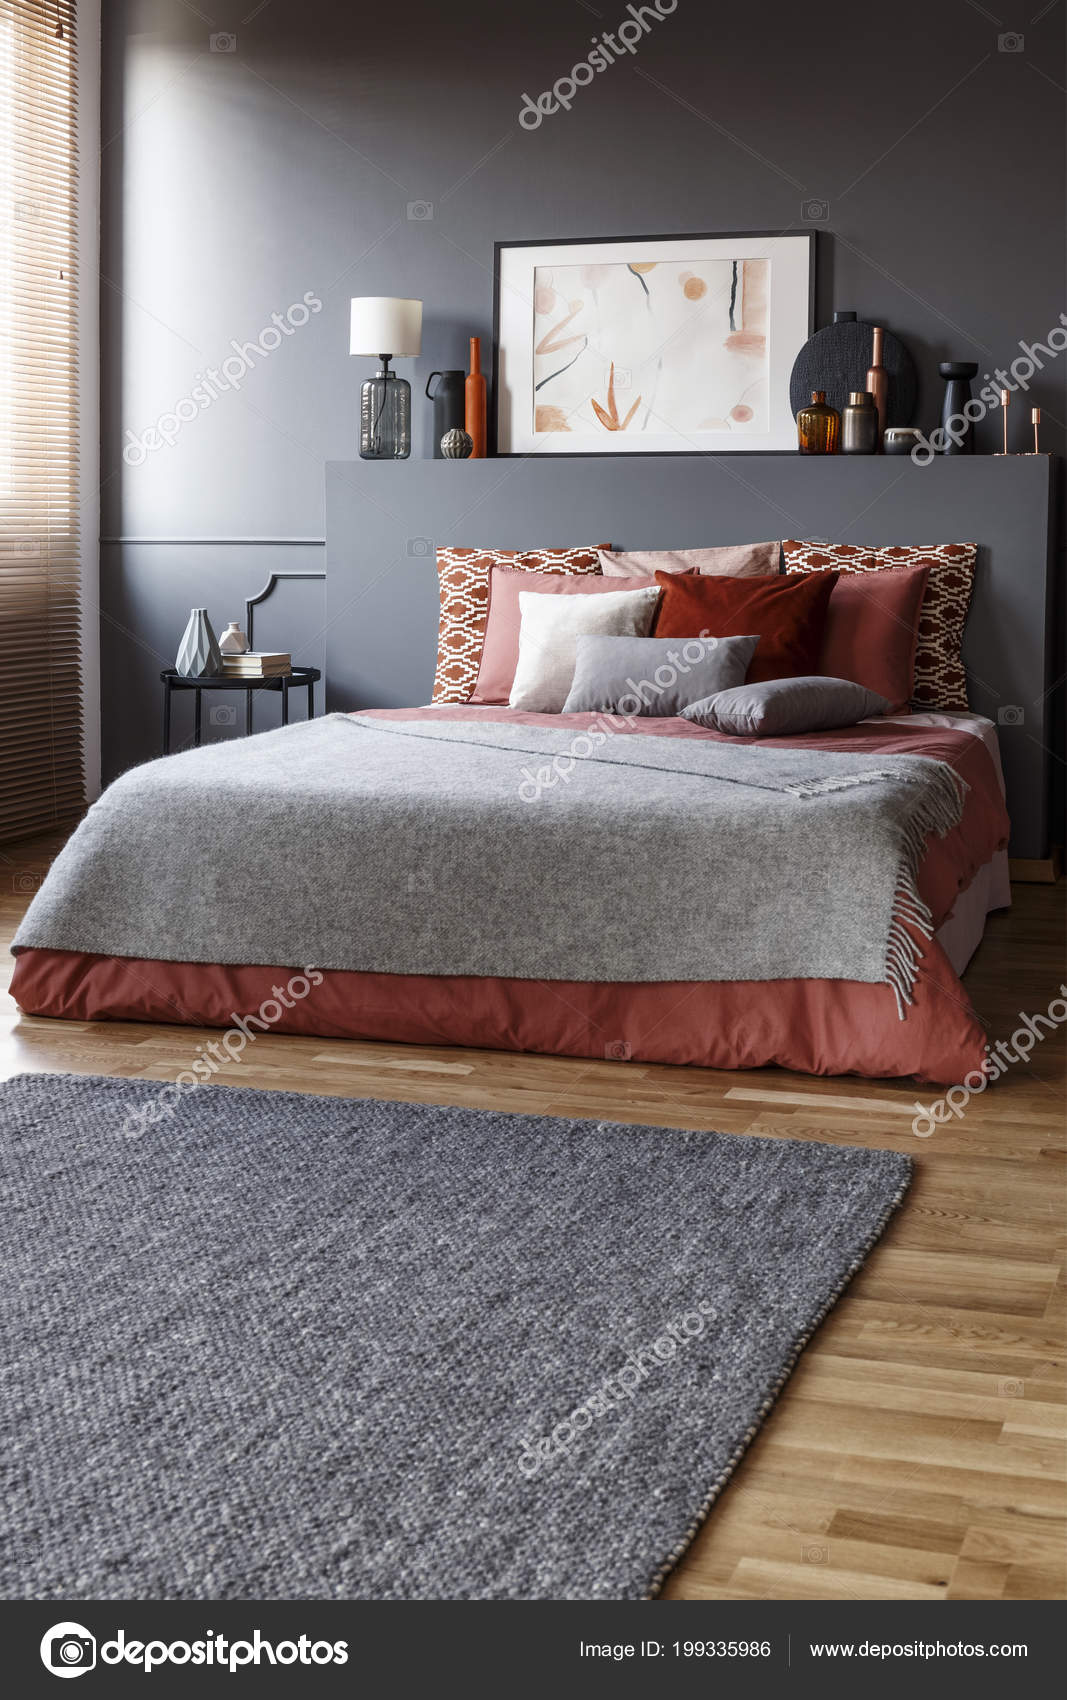 Grey Rug Front King Size Bed Pillows Painting Simple Bedroom Stock Photo C Photographee Eu 199335986